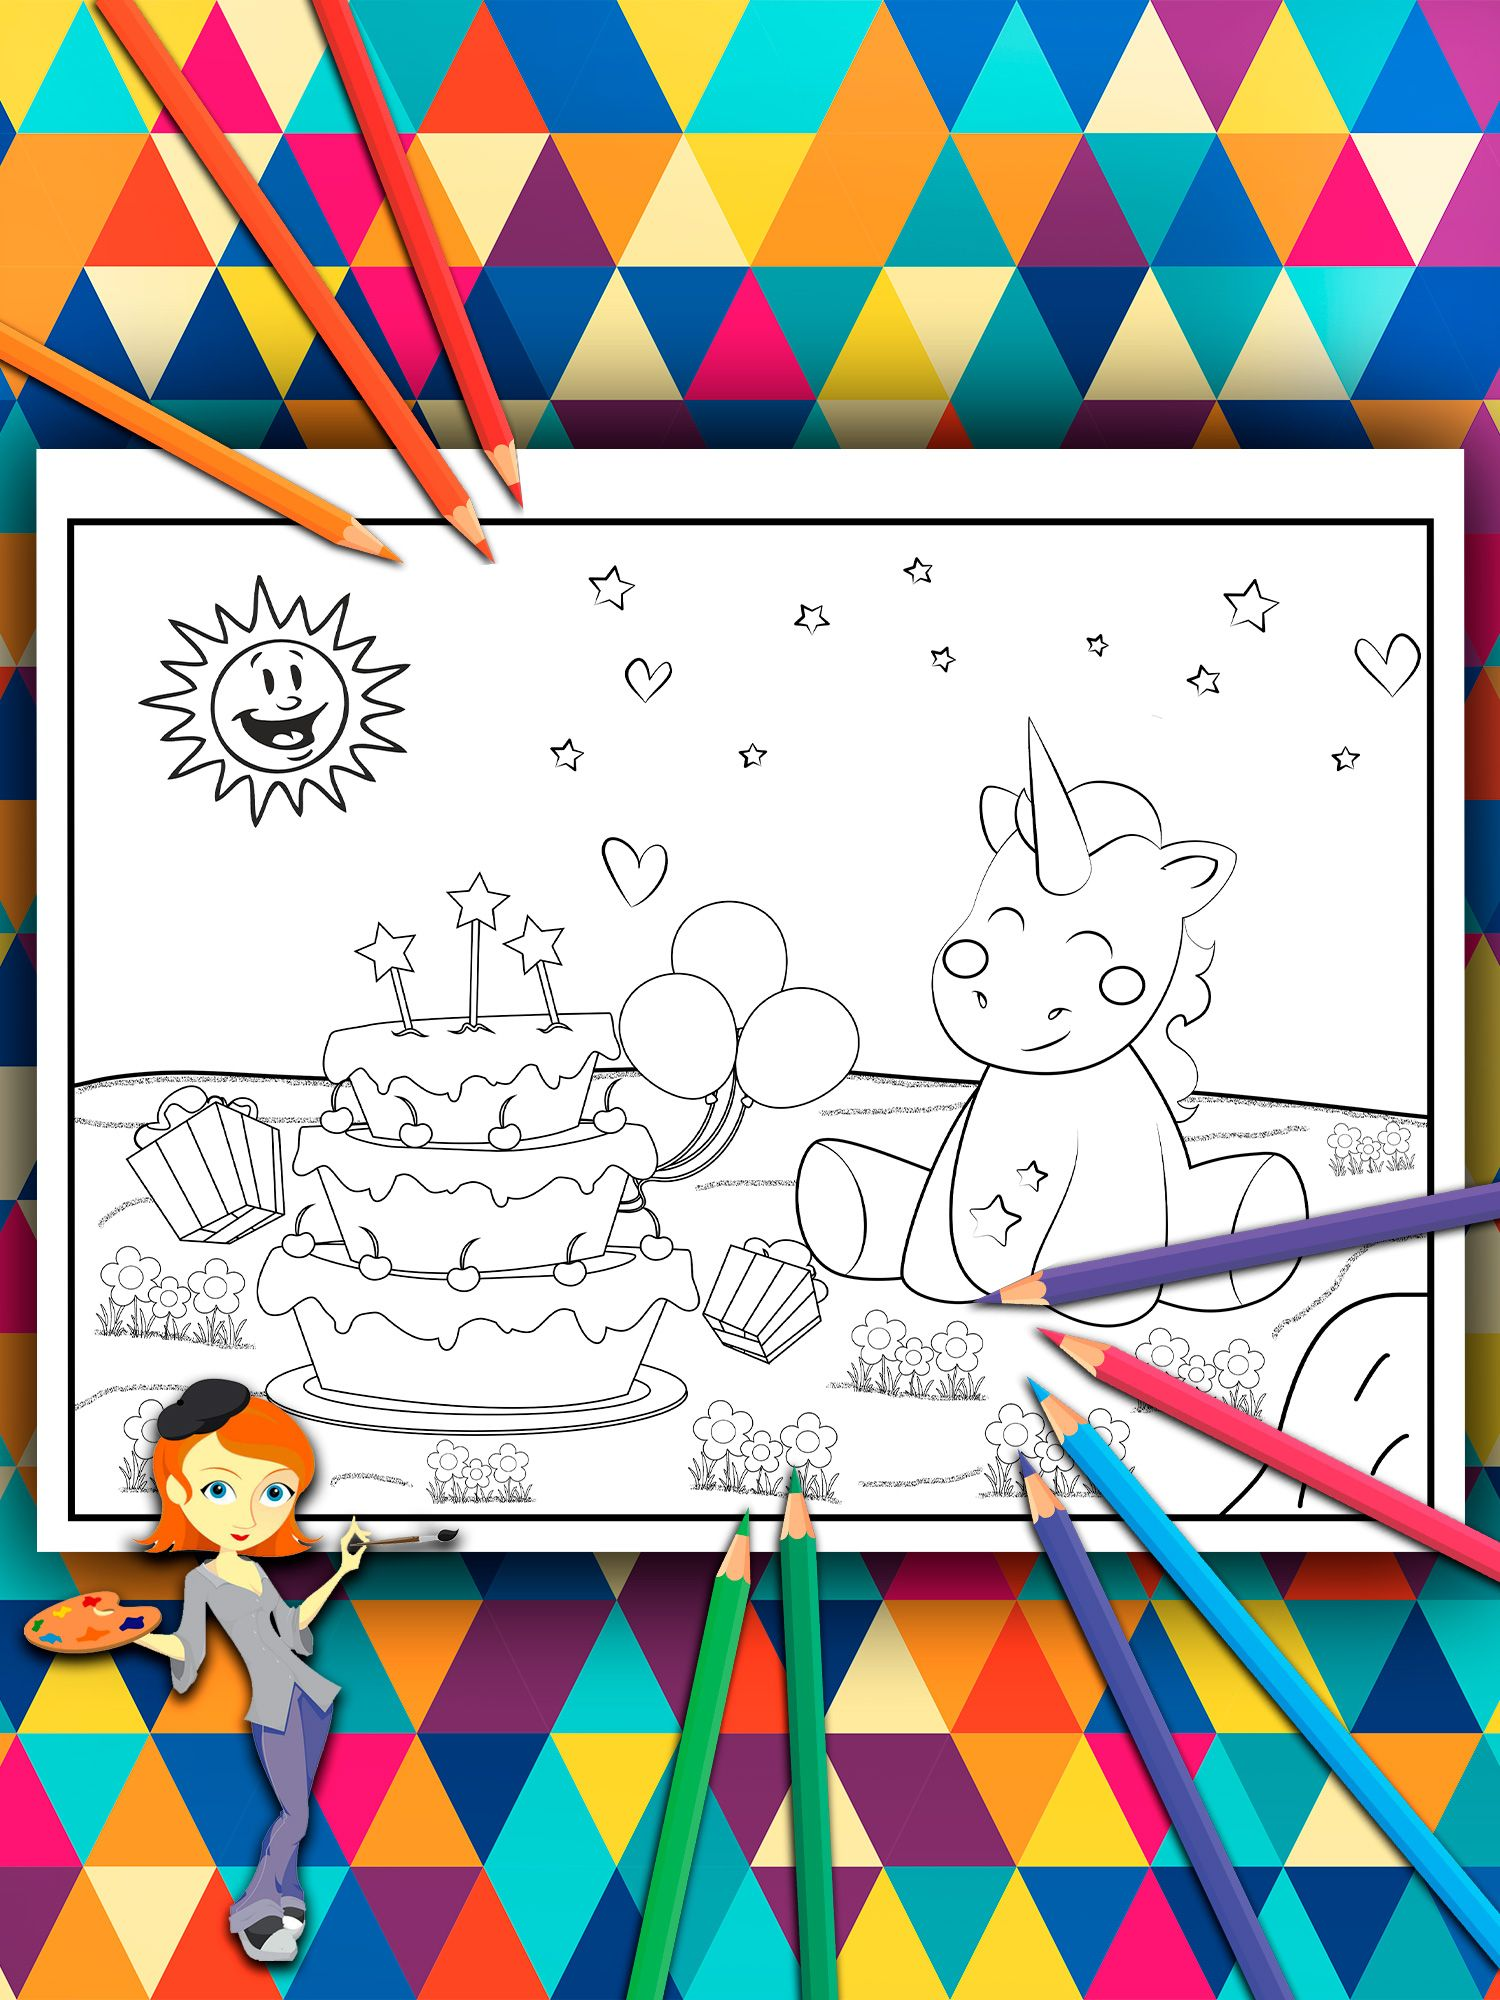 Coloring book for kids. Unicorn birthday with a great